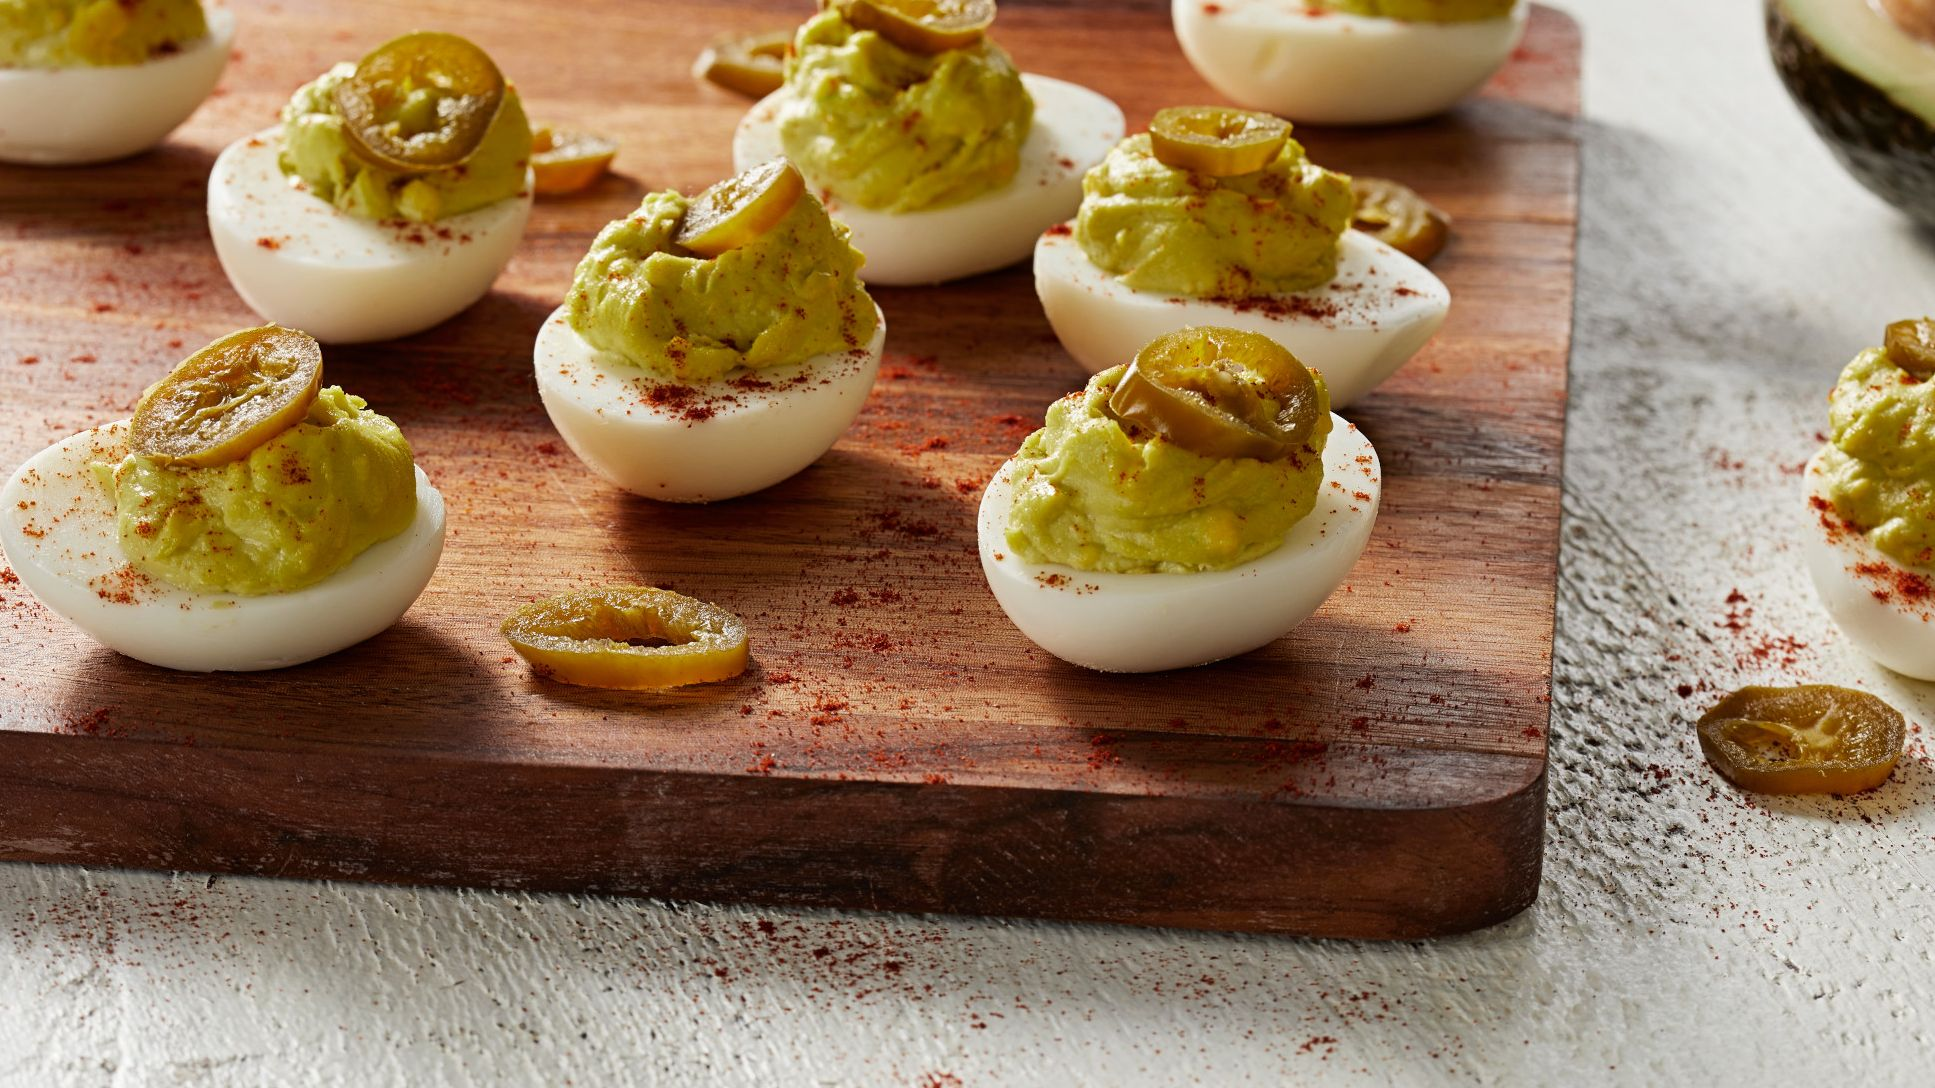 Avocado_Chipotle_Deviled_Eggs_236.jpg